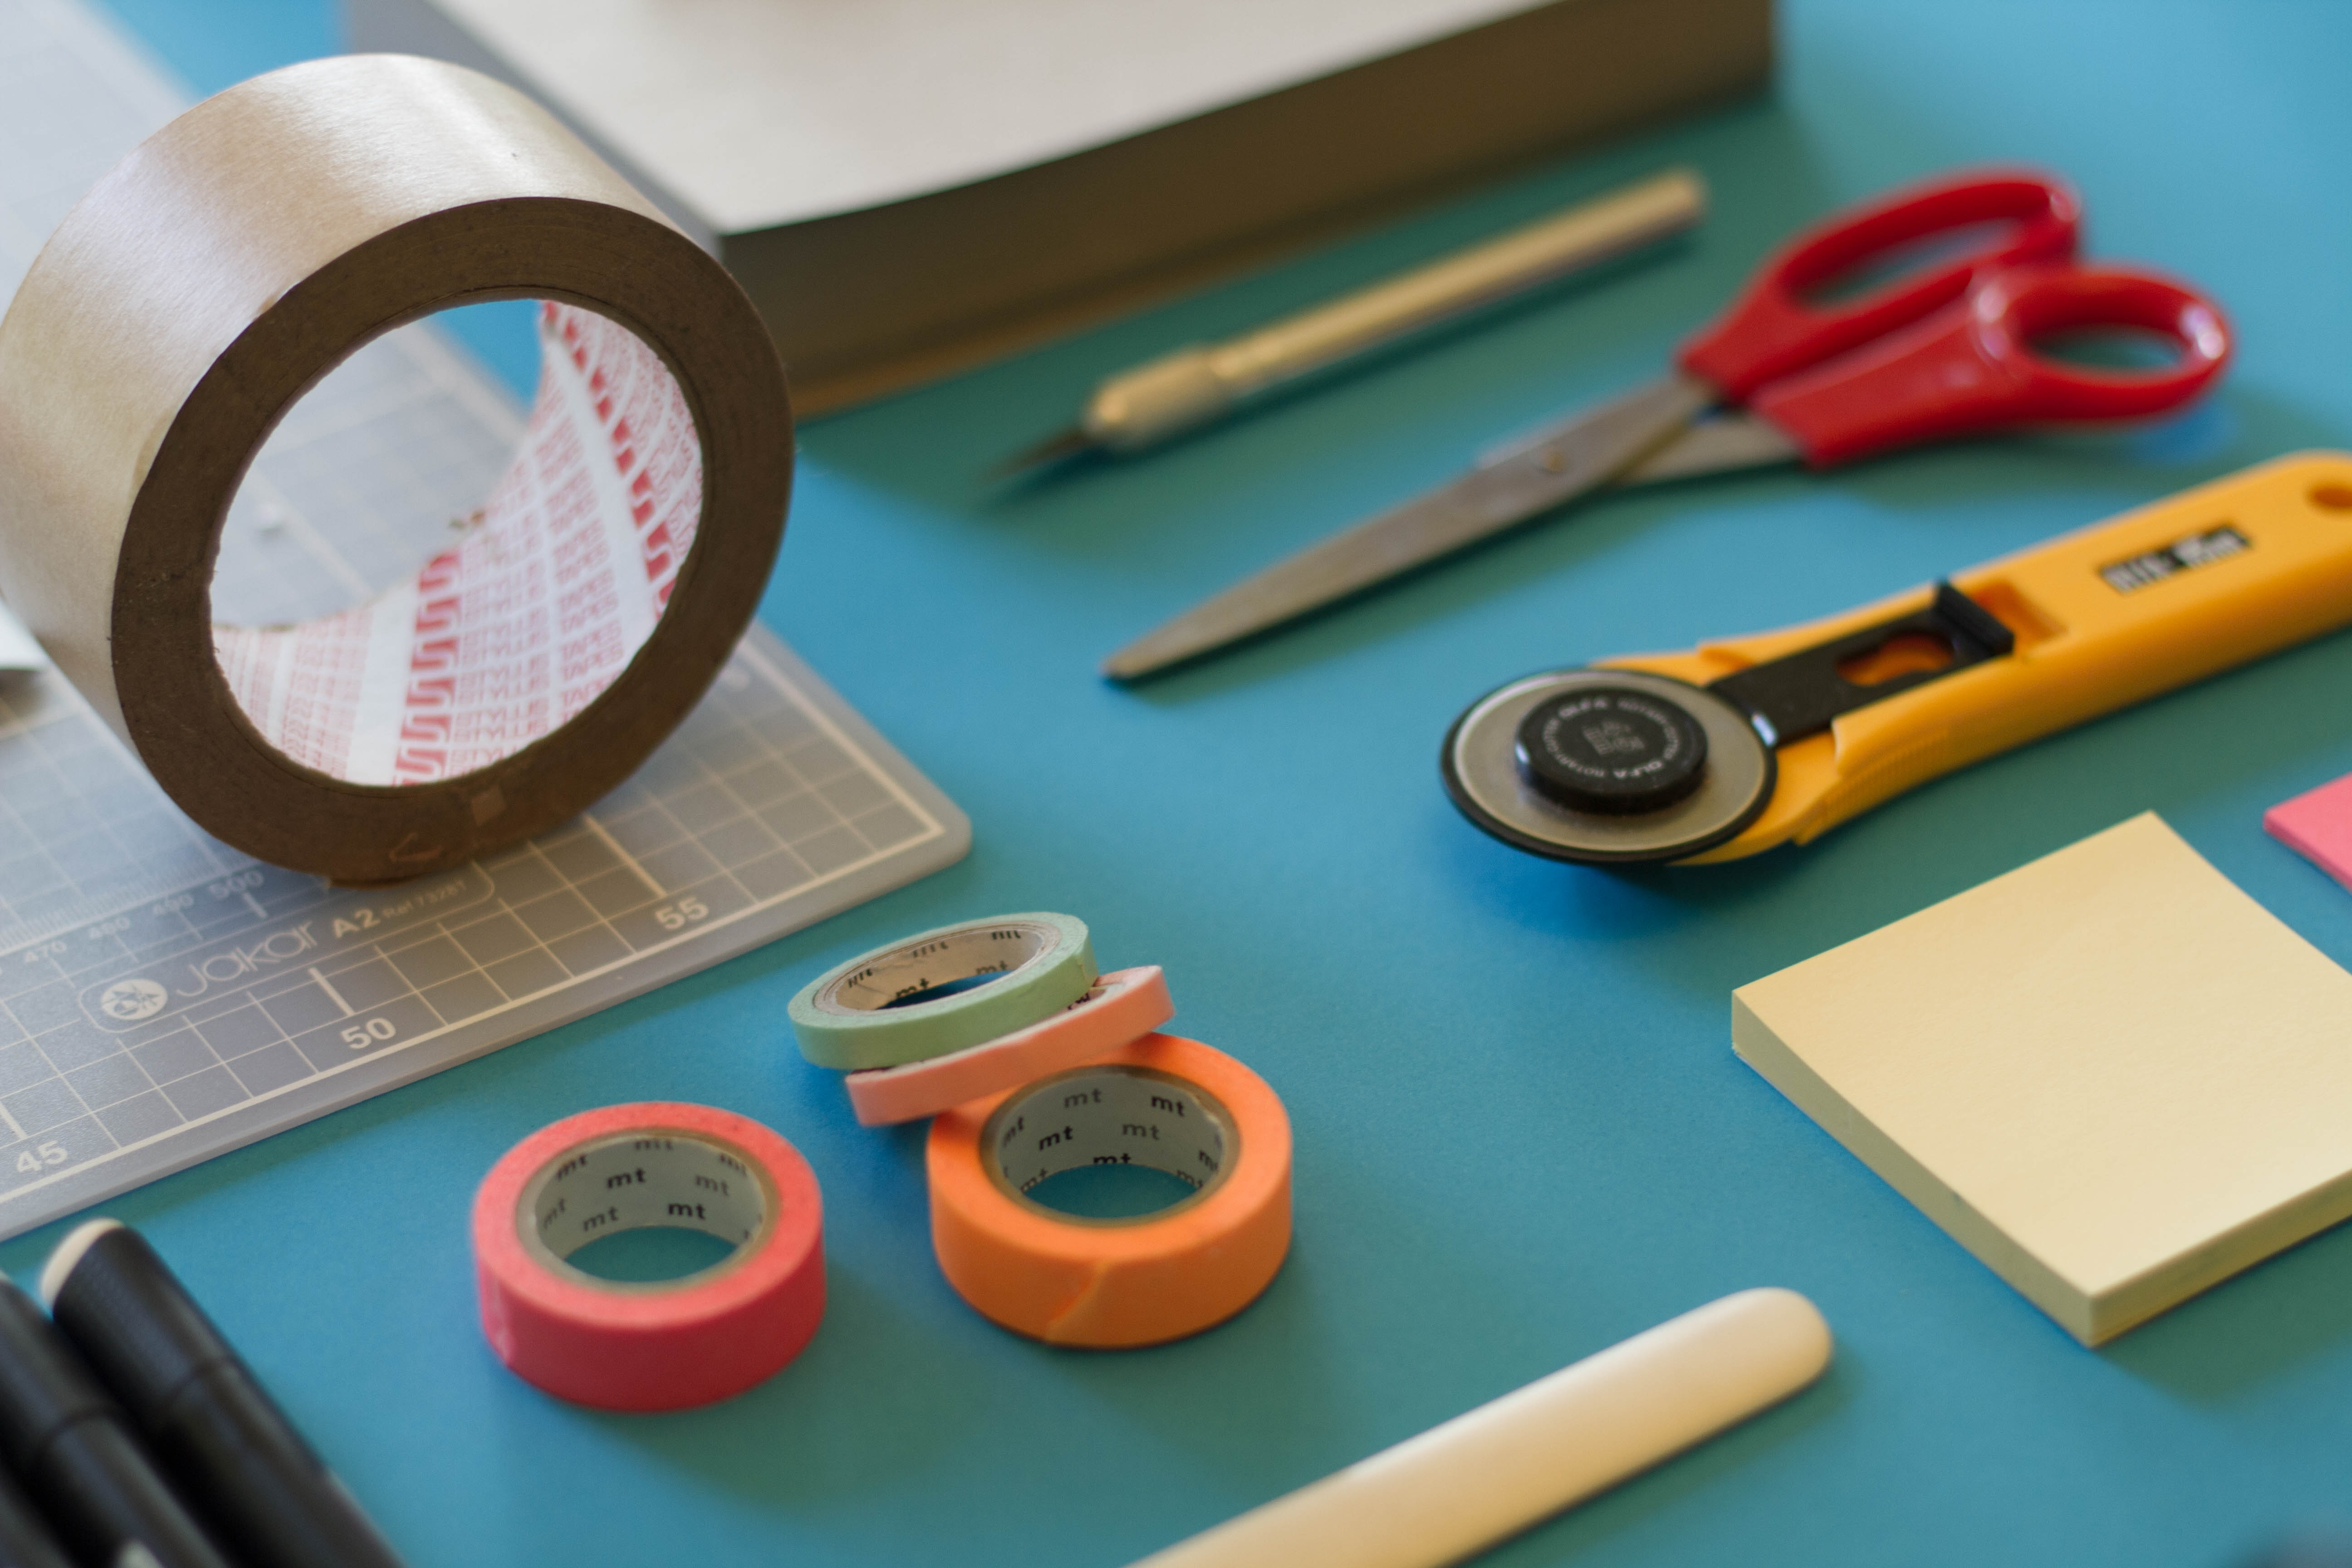 Tape and cutting tools arranged on a tabletop.